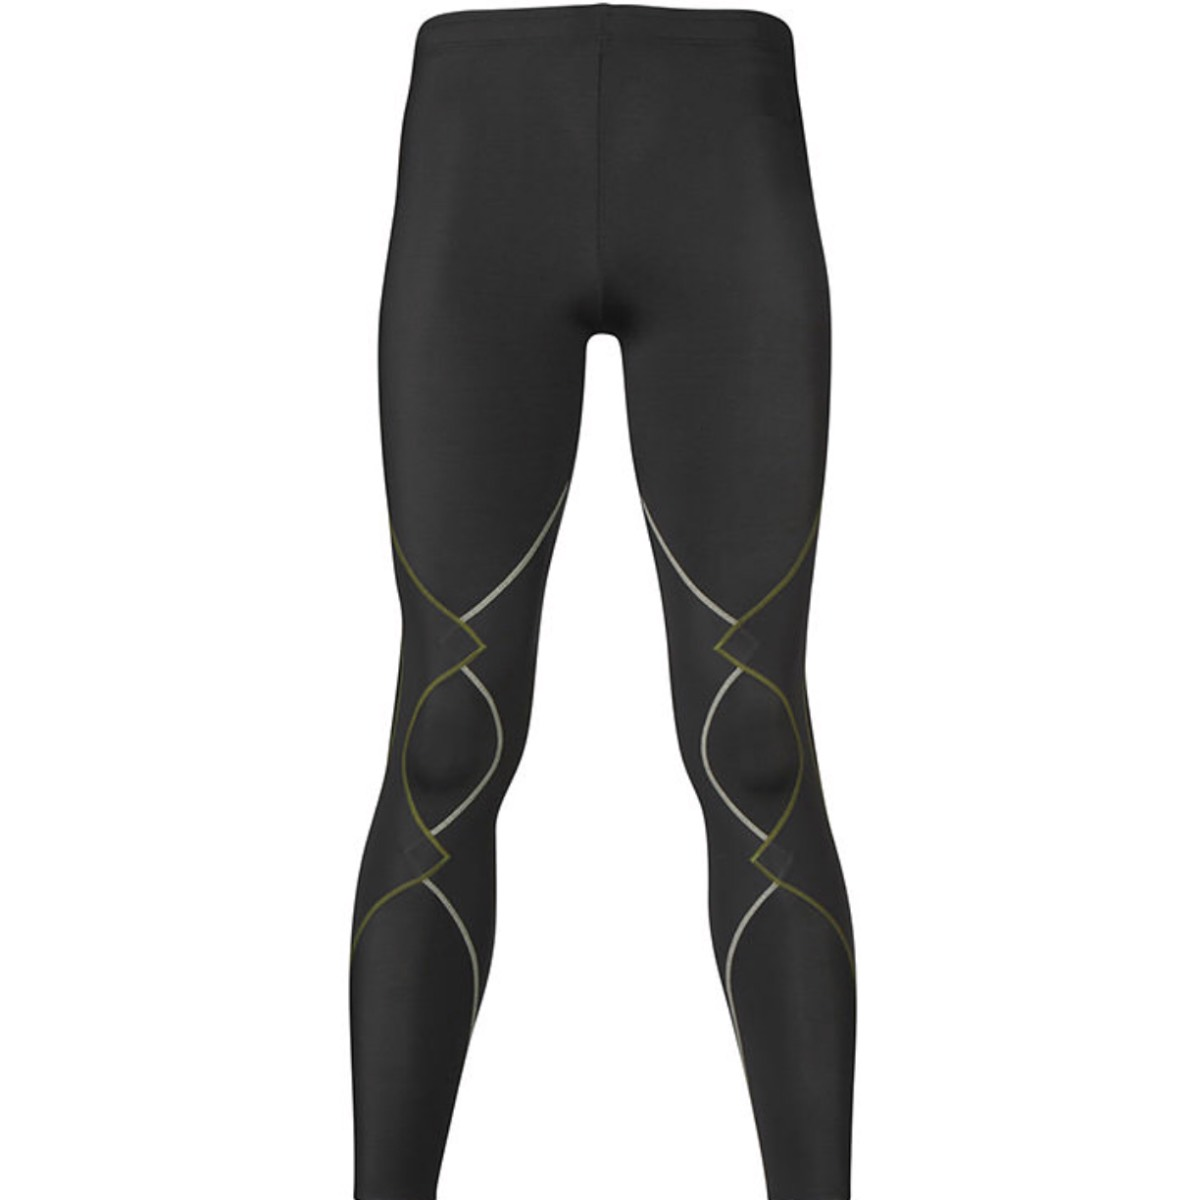 Cw-x Sports Compression Male2